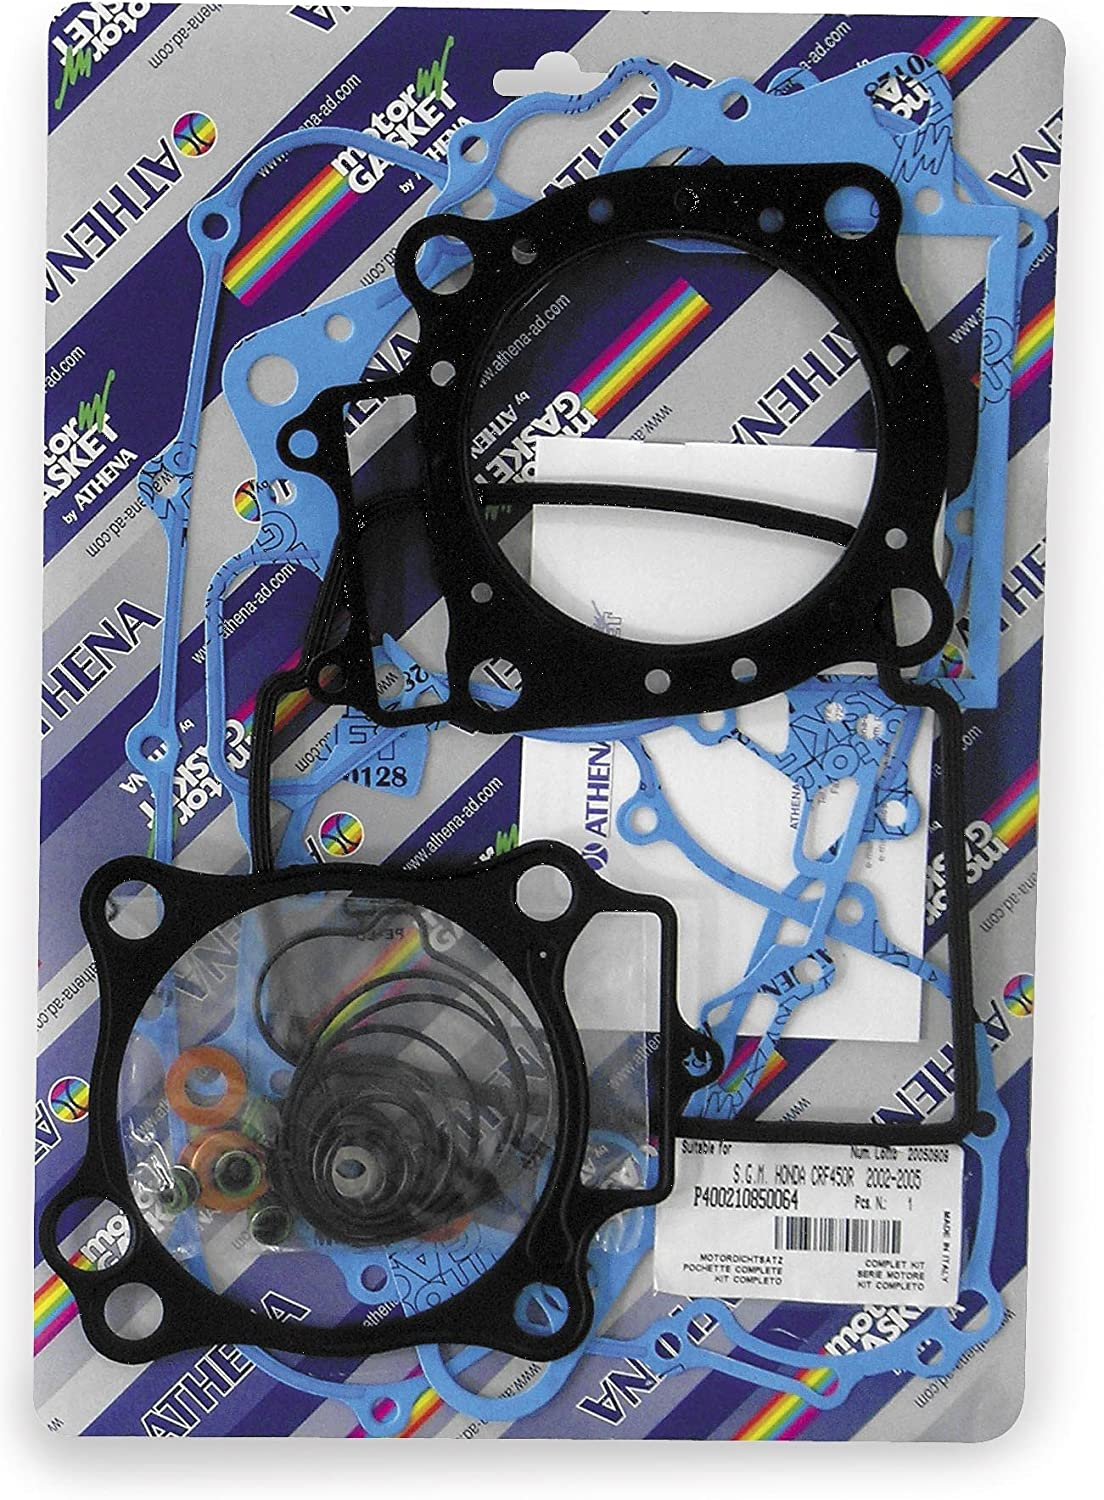 Athena Complete Gasket Kit for Limited time for free shipping Finally resale start 220 Bayou 250 85-02 Kawasaki